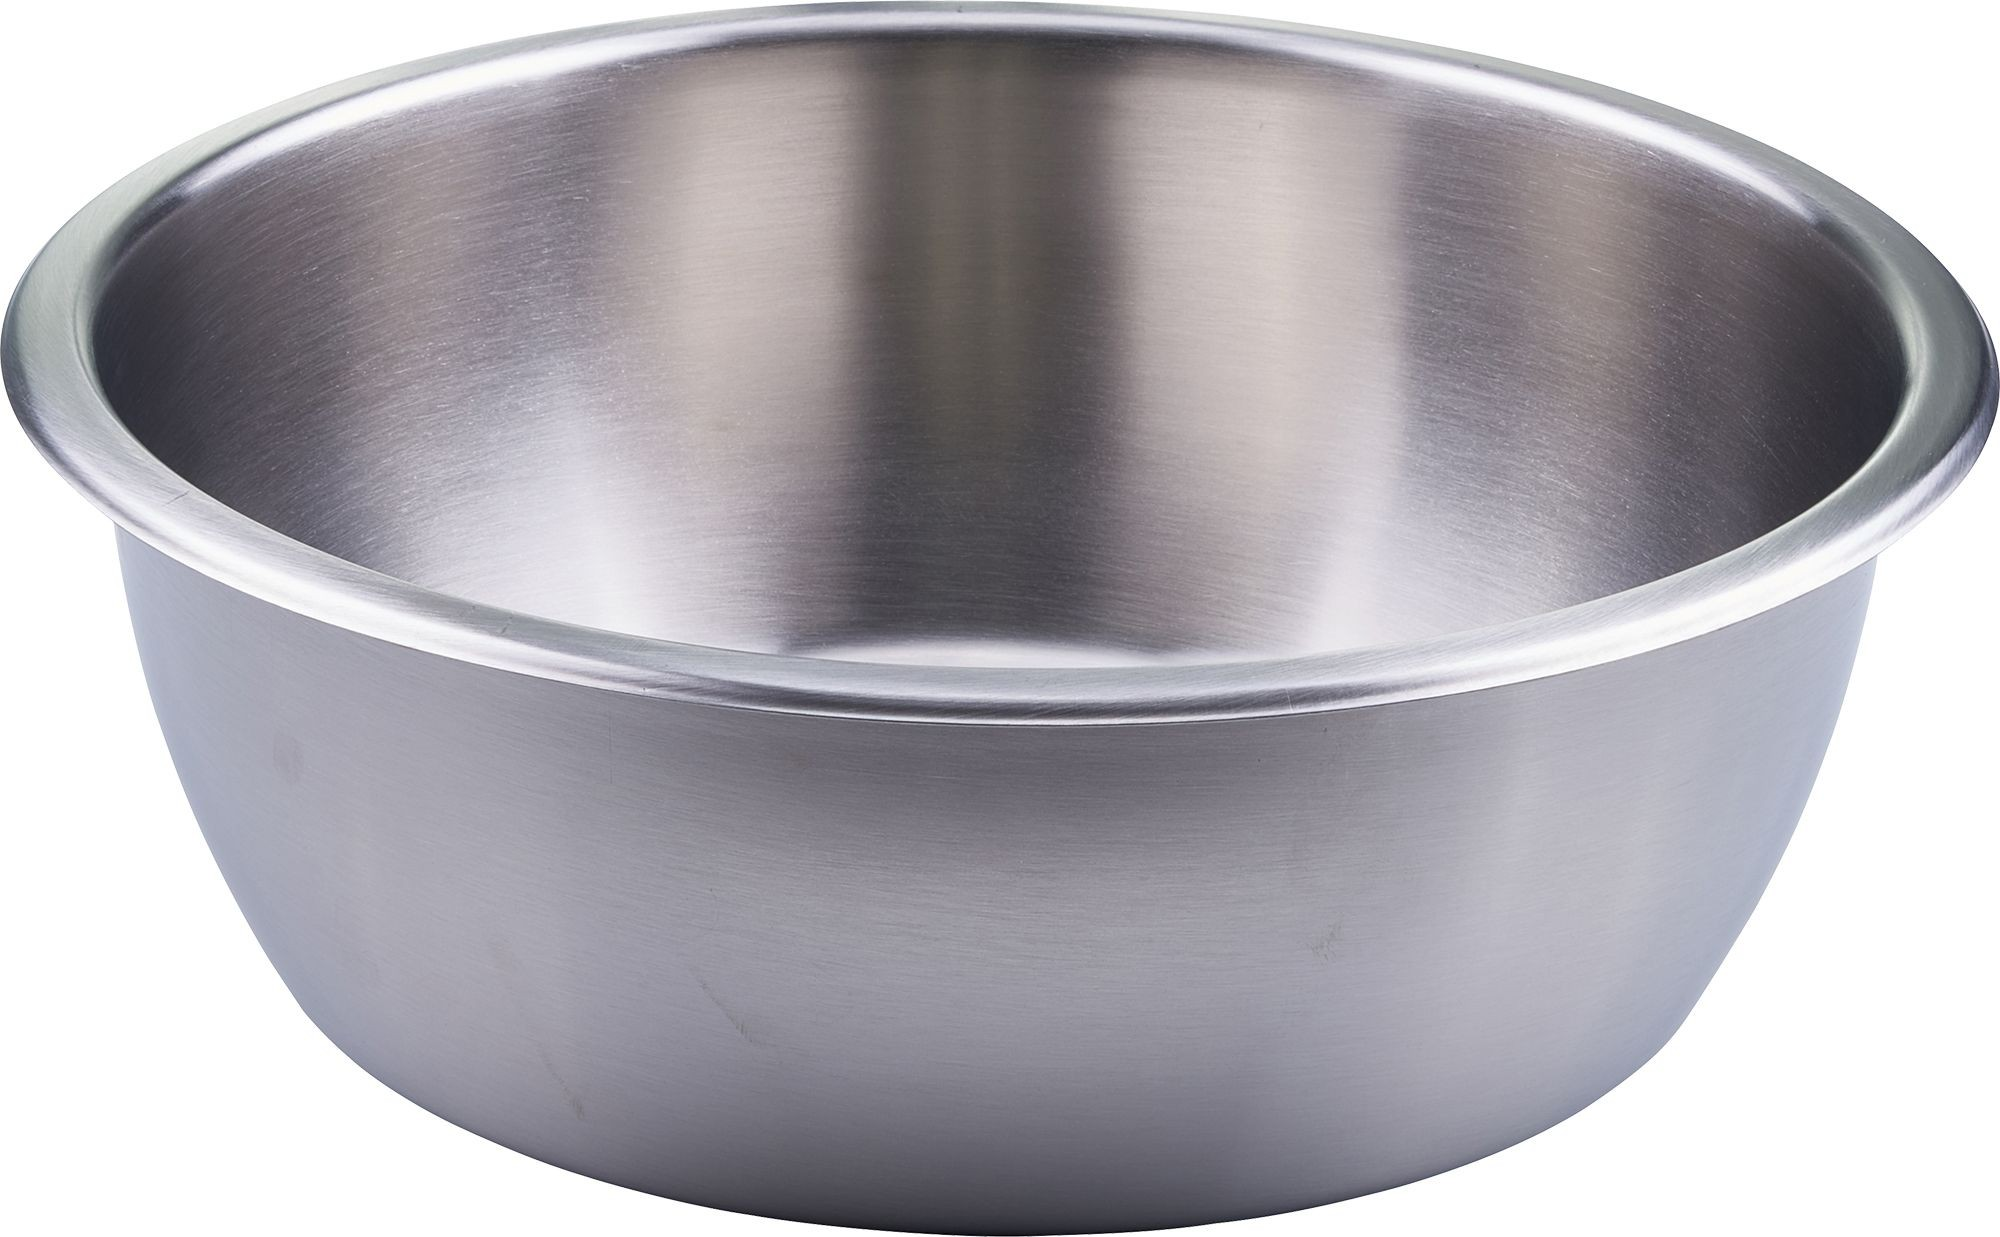 Winco 708-wp Water Pan for 5 Qt. Crown Round Chafer 708